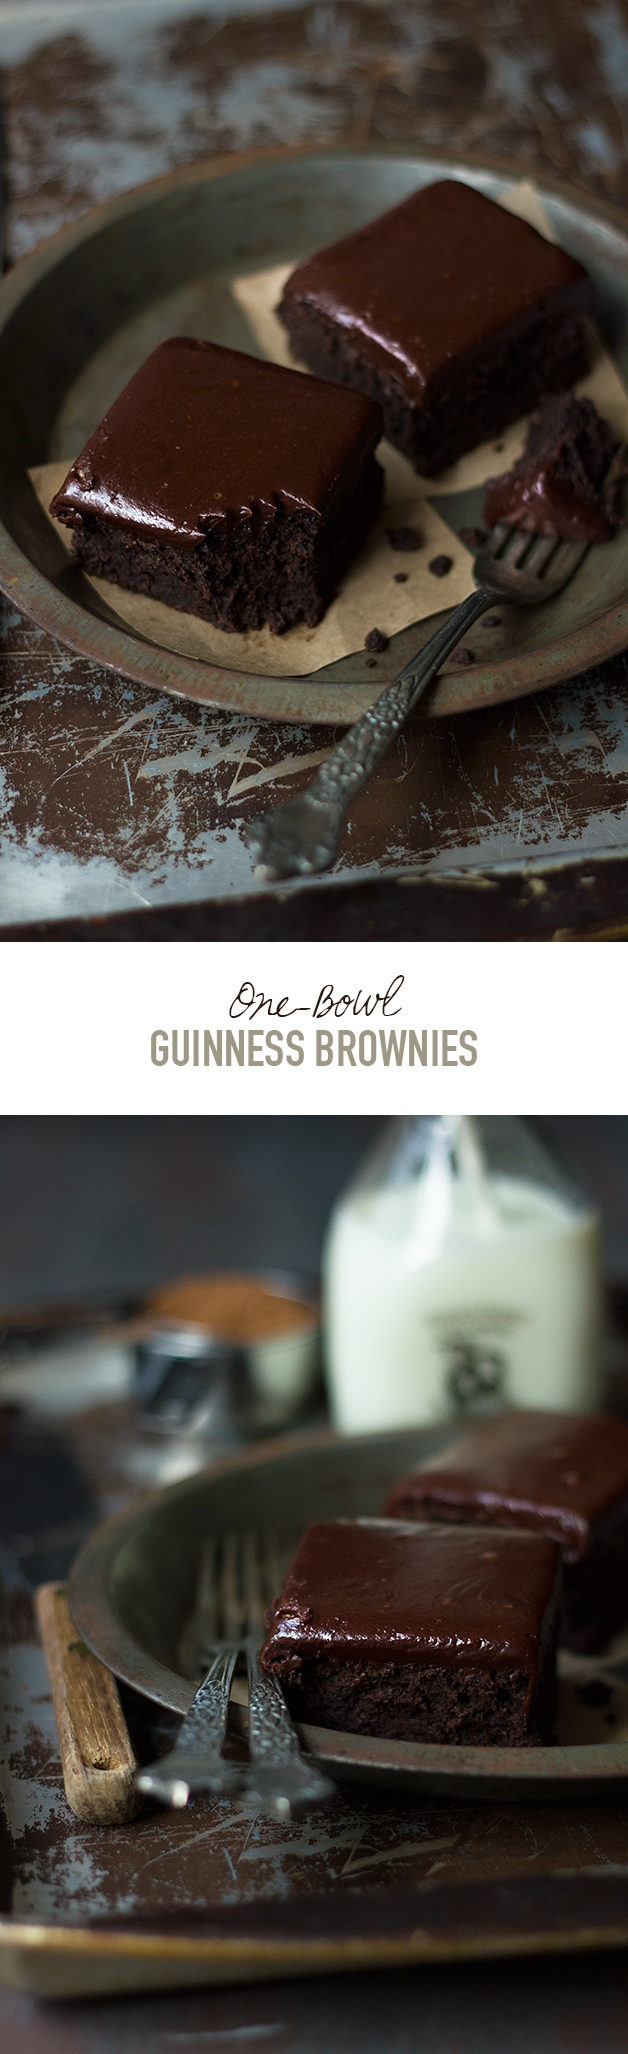 One-Bowl Guinness Brownies | www.brighteyedbaker.com